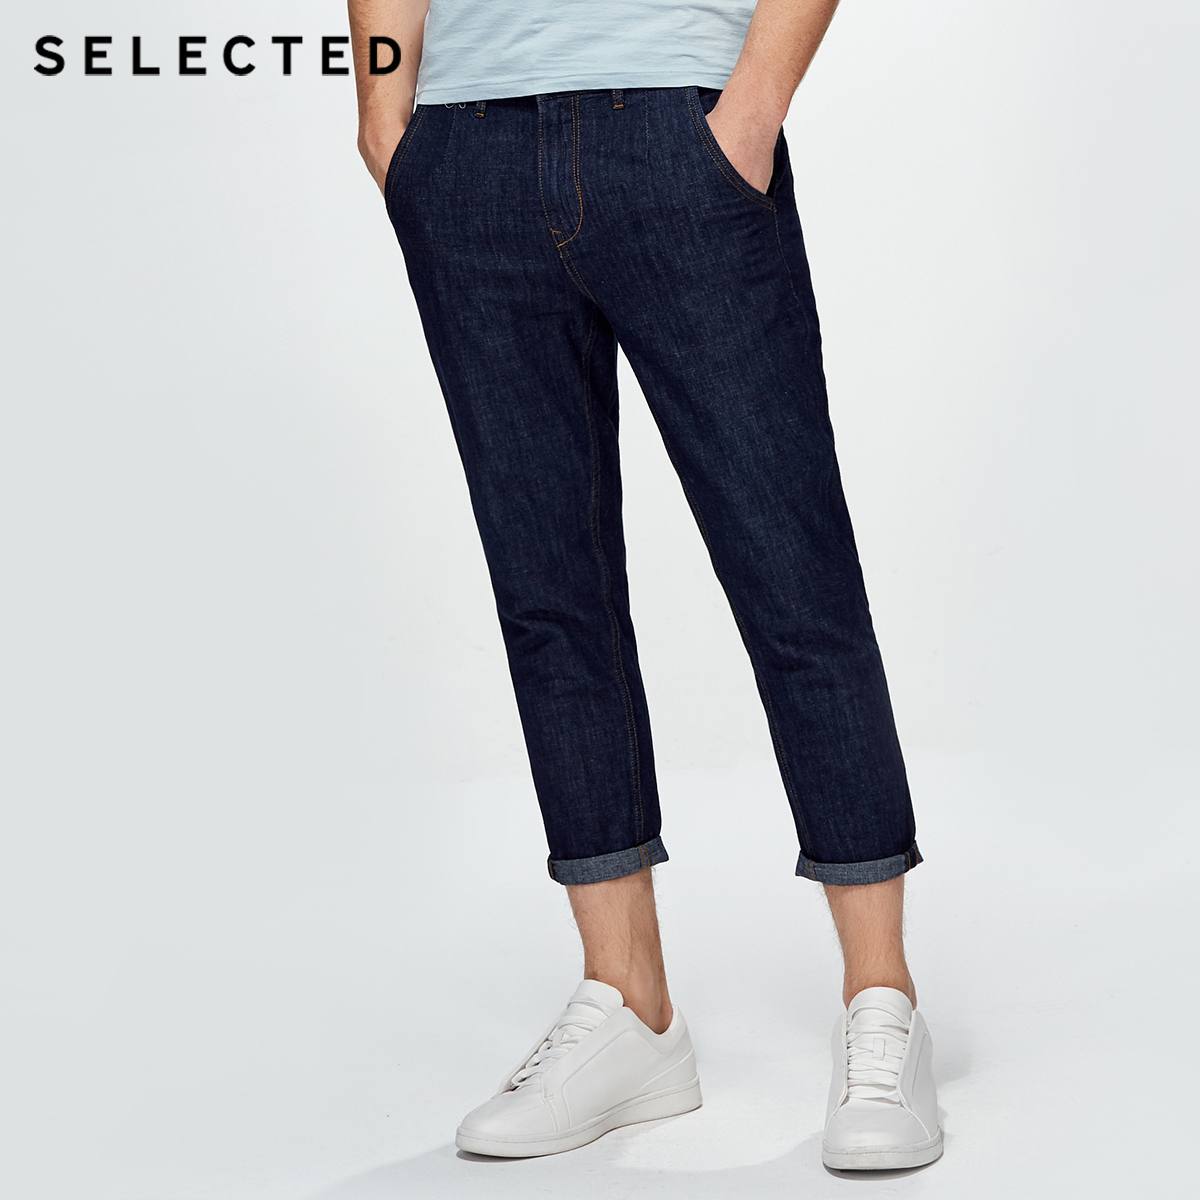 SELECTED cotton loose chopped   jean   pants C|418232523